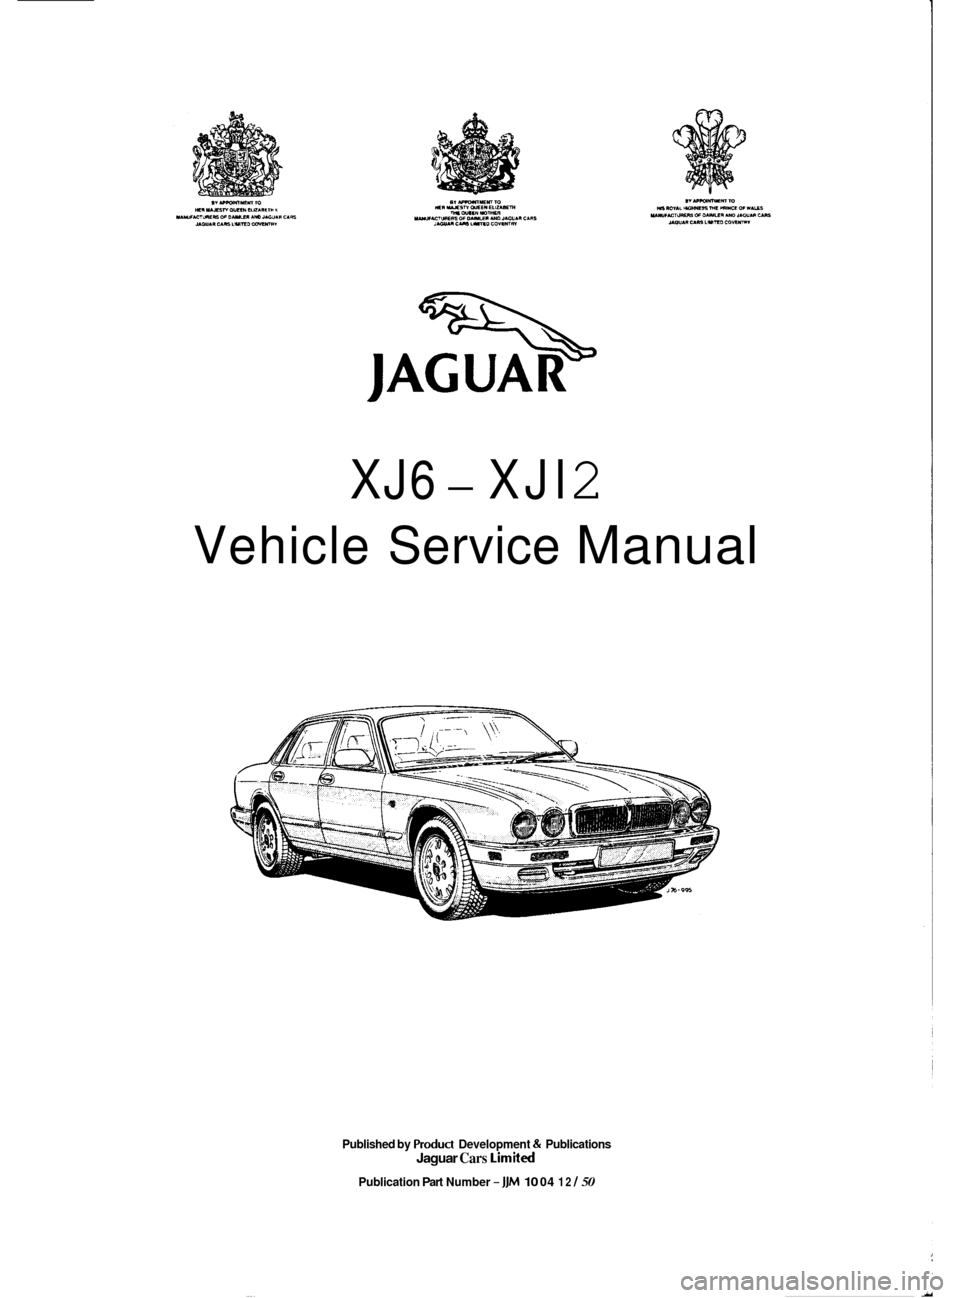 jaguar xj6 1994 2 g workshop manual. Black Bedroom Furniture Sets. Home Design Ideas